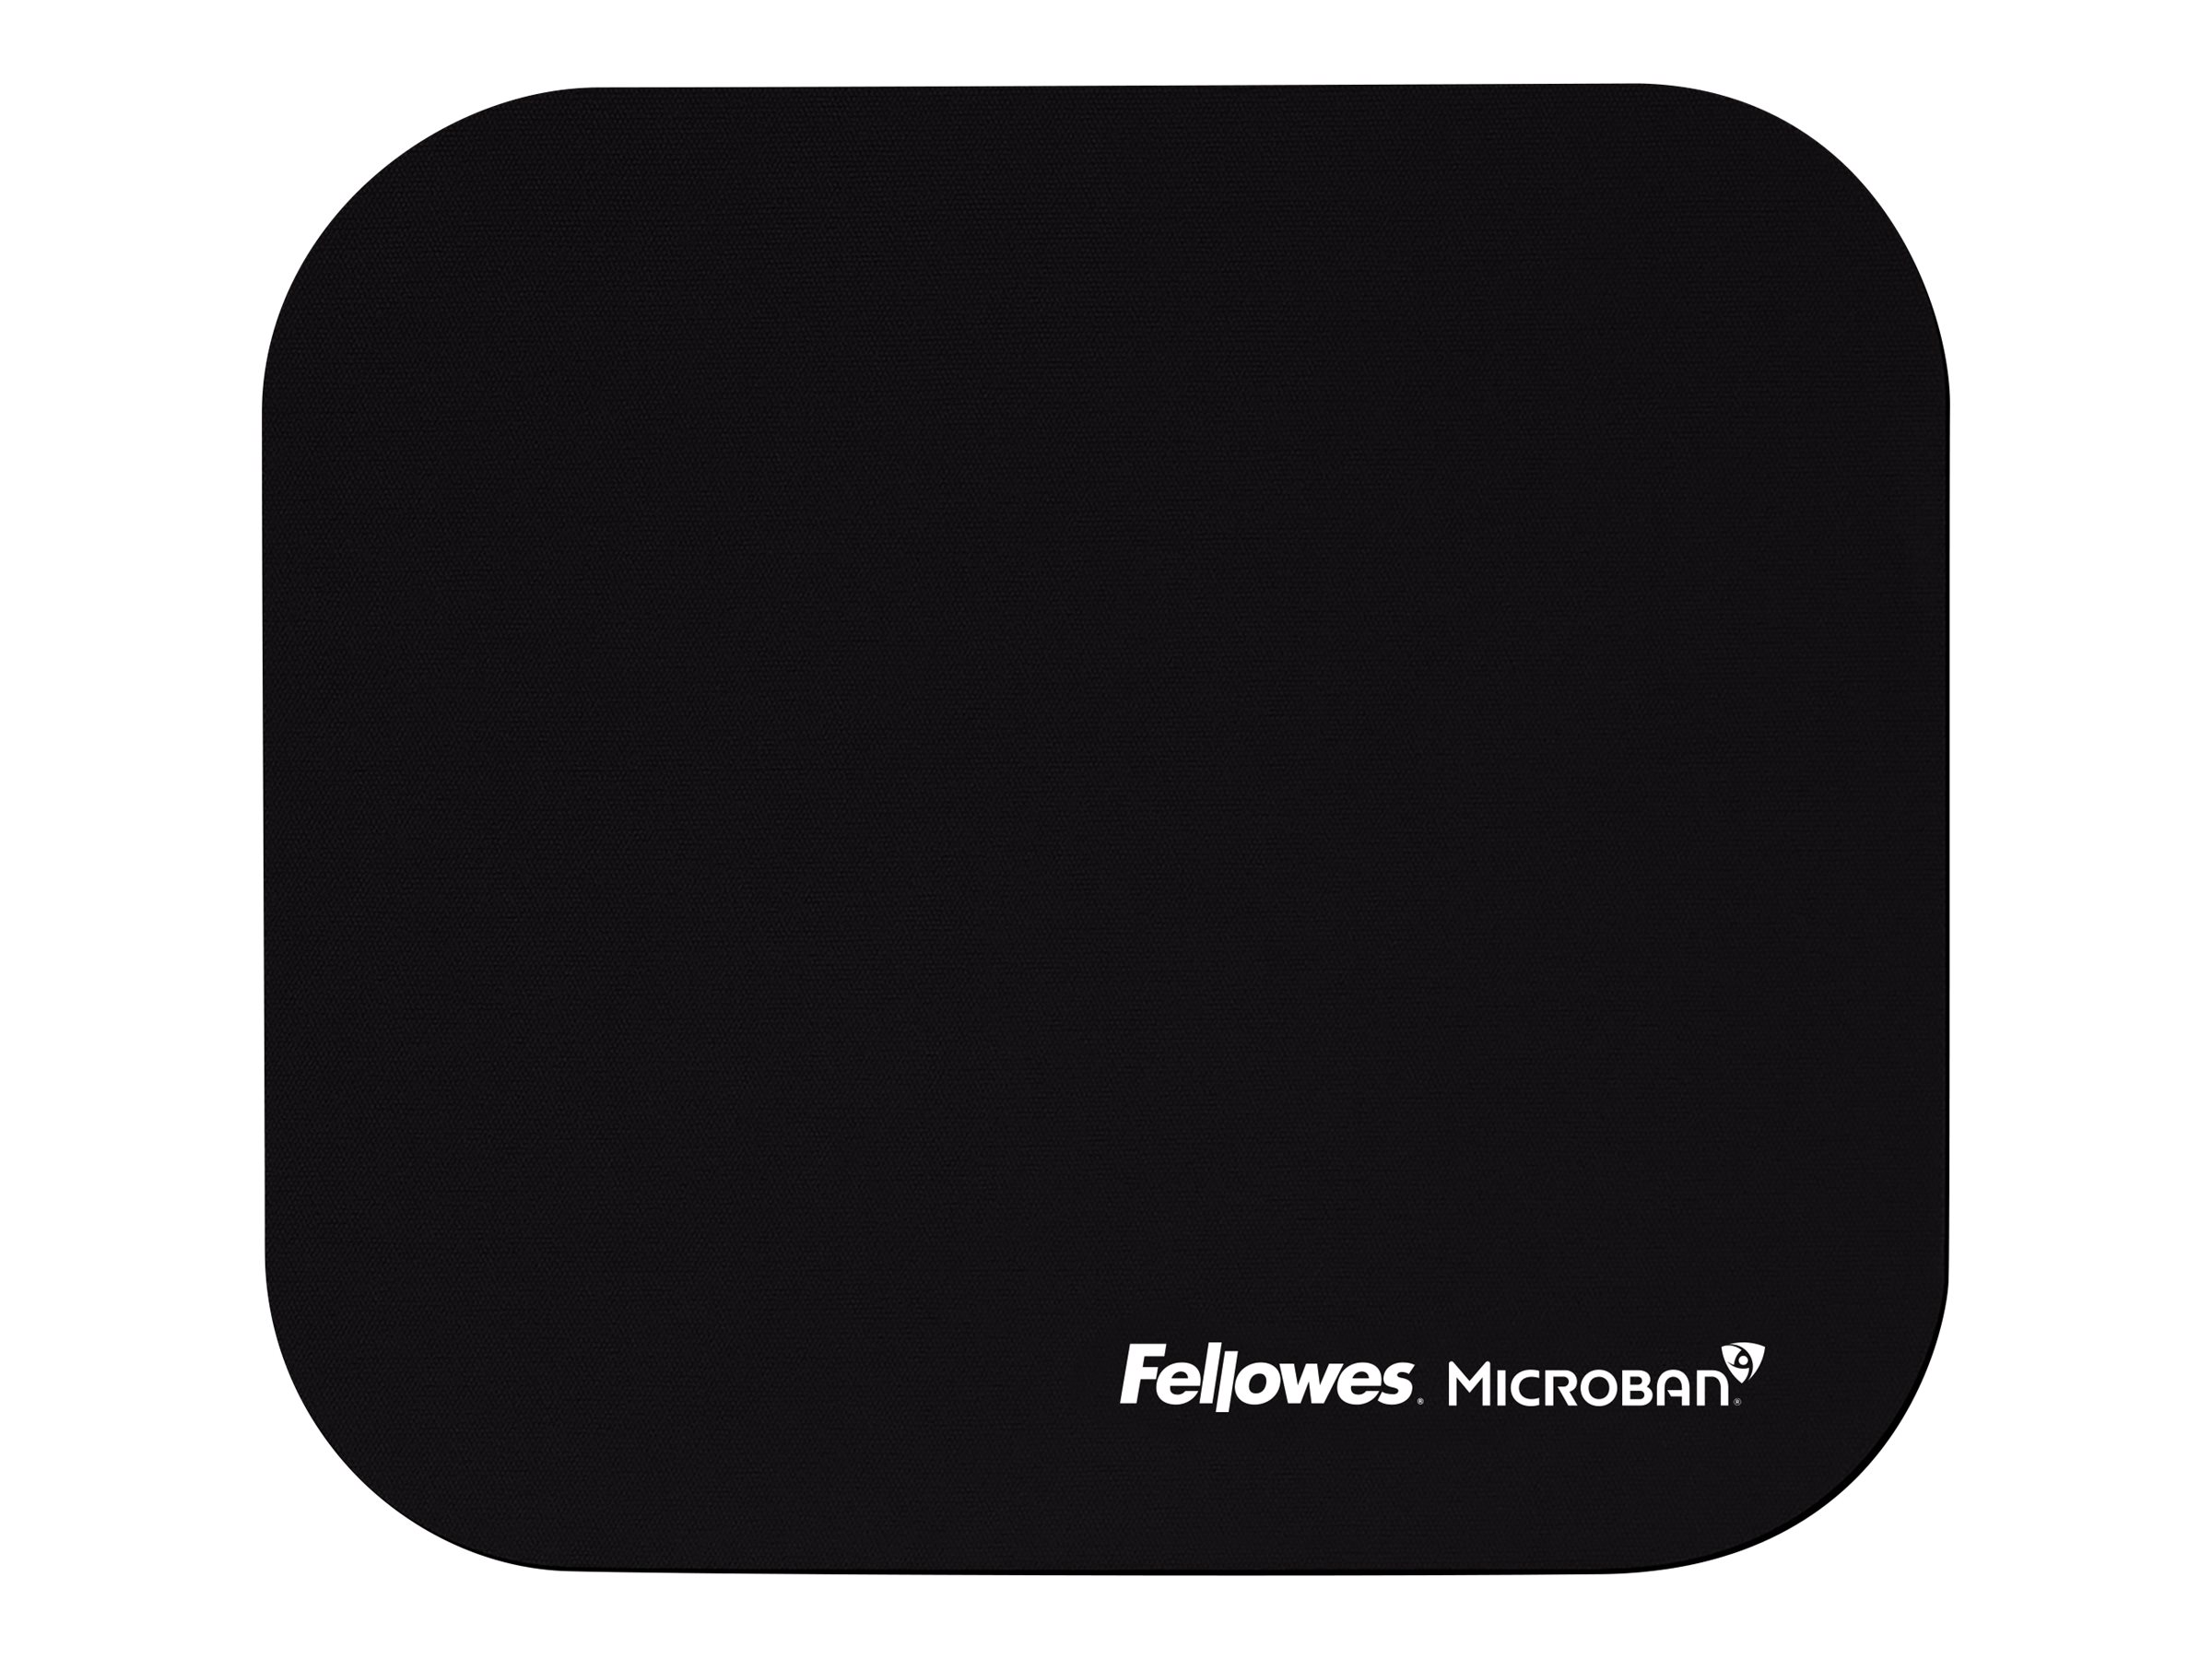 Fellowes Microban - mouse pad